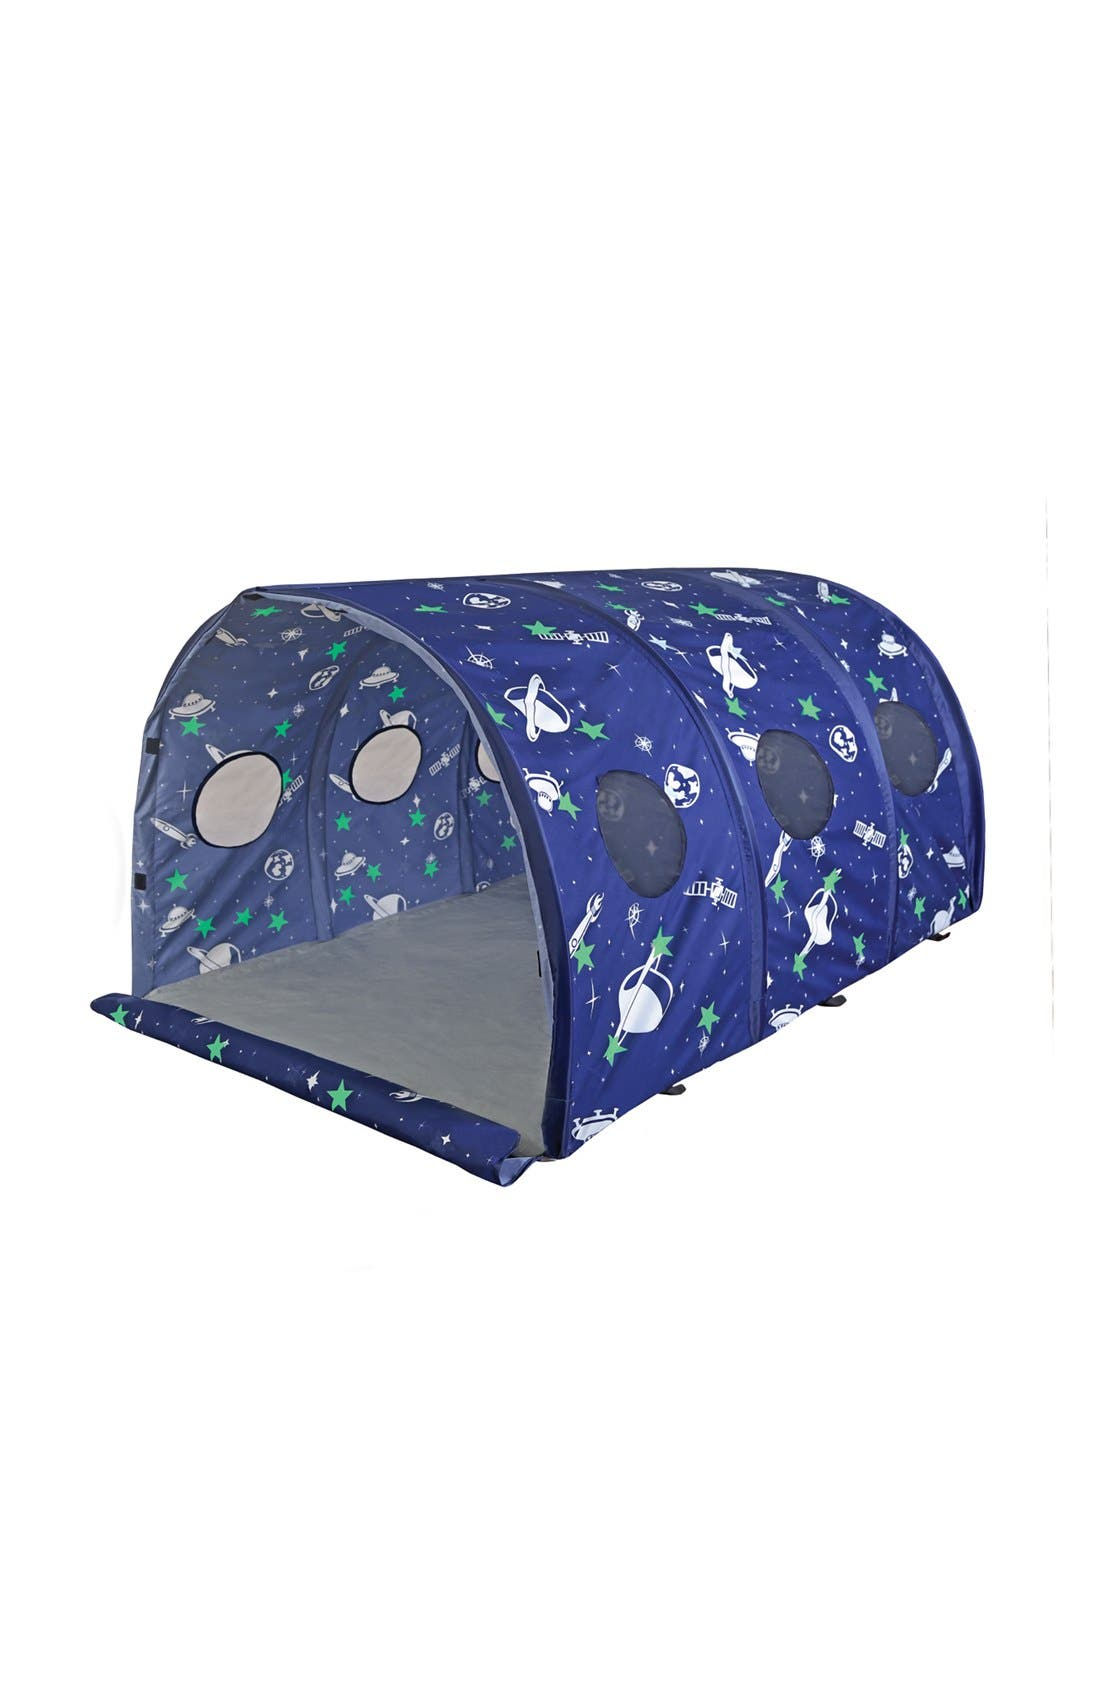 'Space Capsule' Glow in the Dark Tent,                             Main thumbnail 1, color,                             BLUE/ WHITE